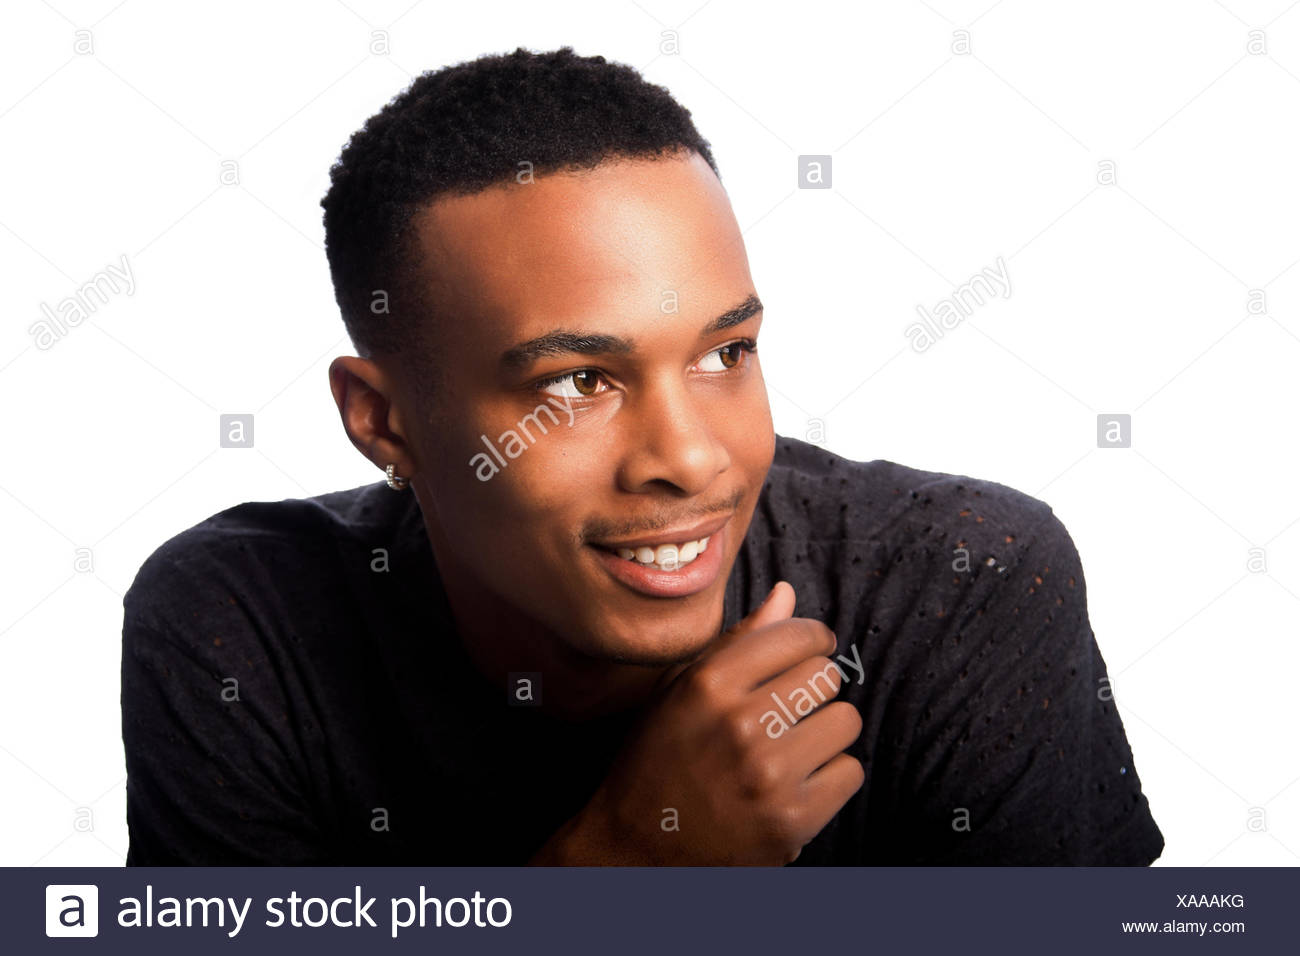 Handsome happy smiling adolescent man - Stock Image